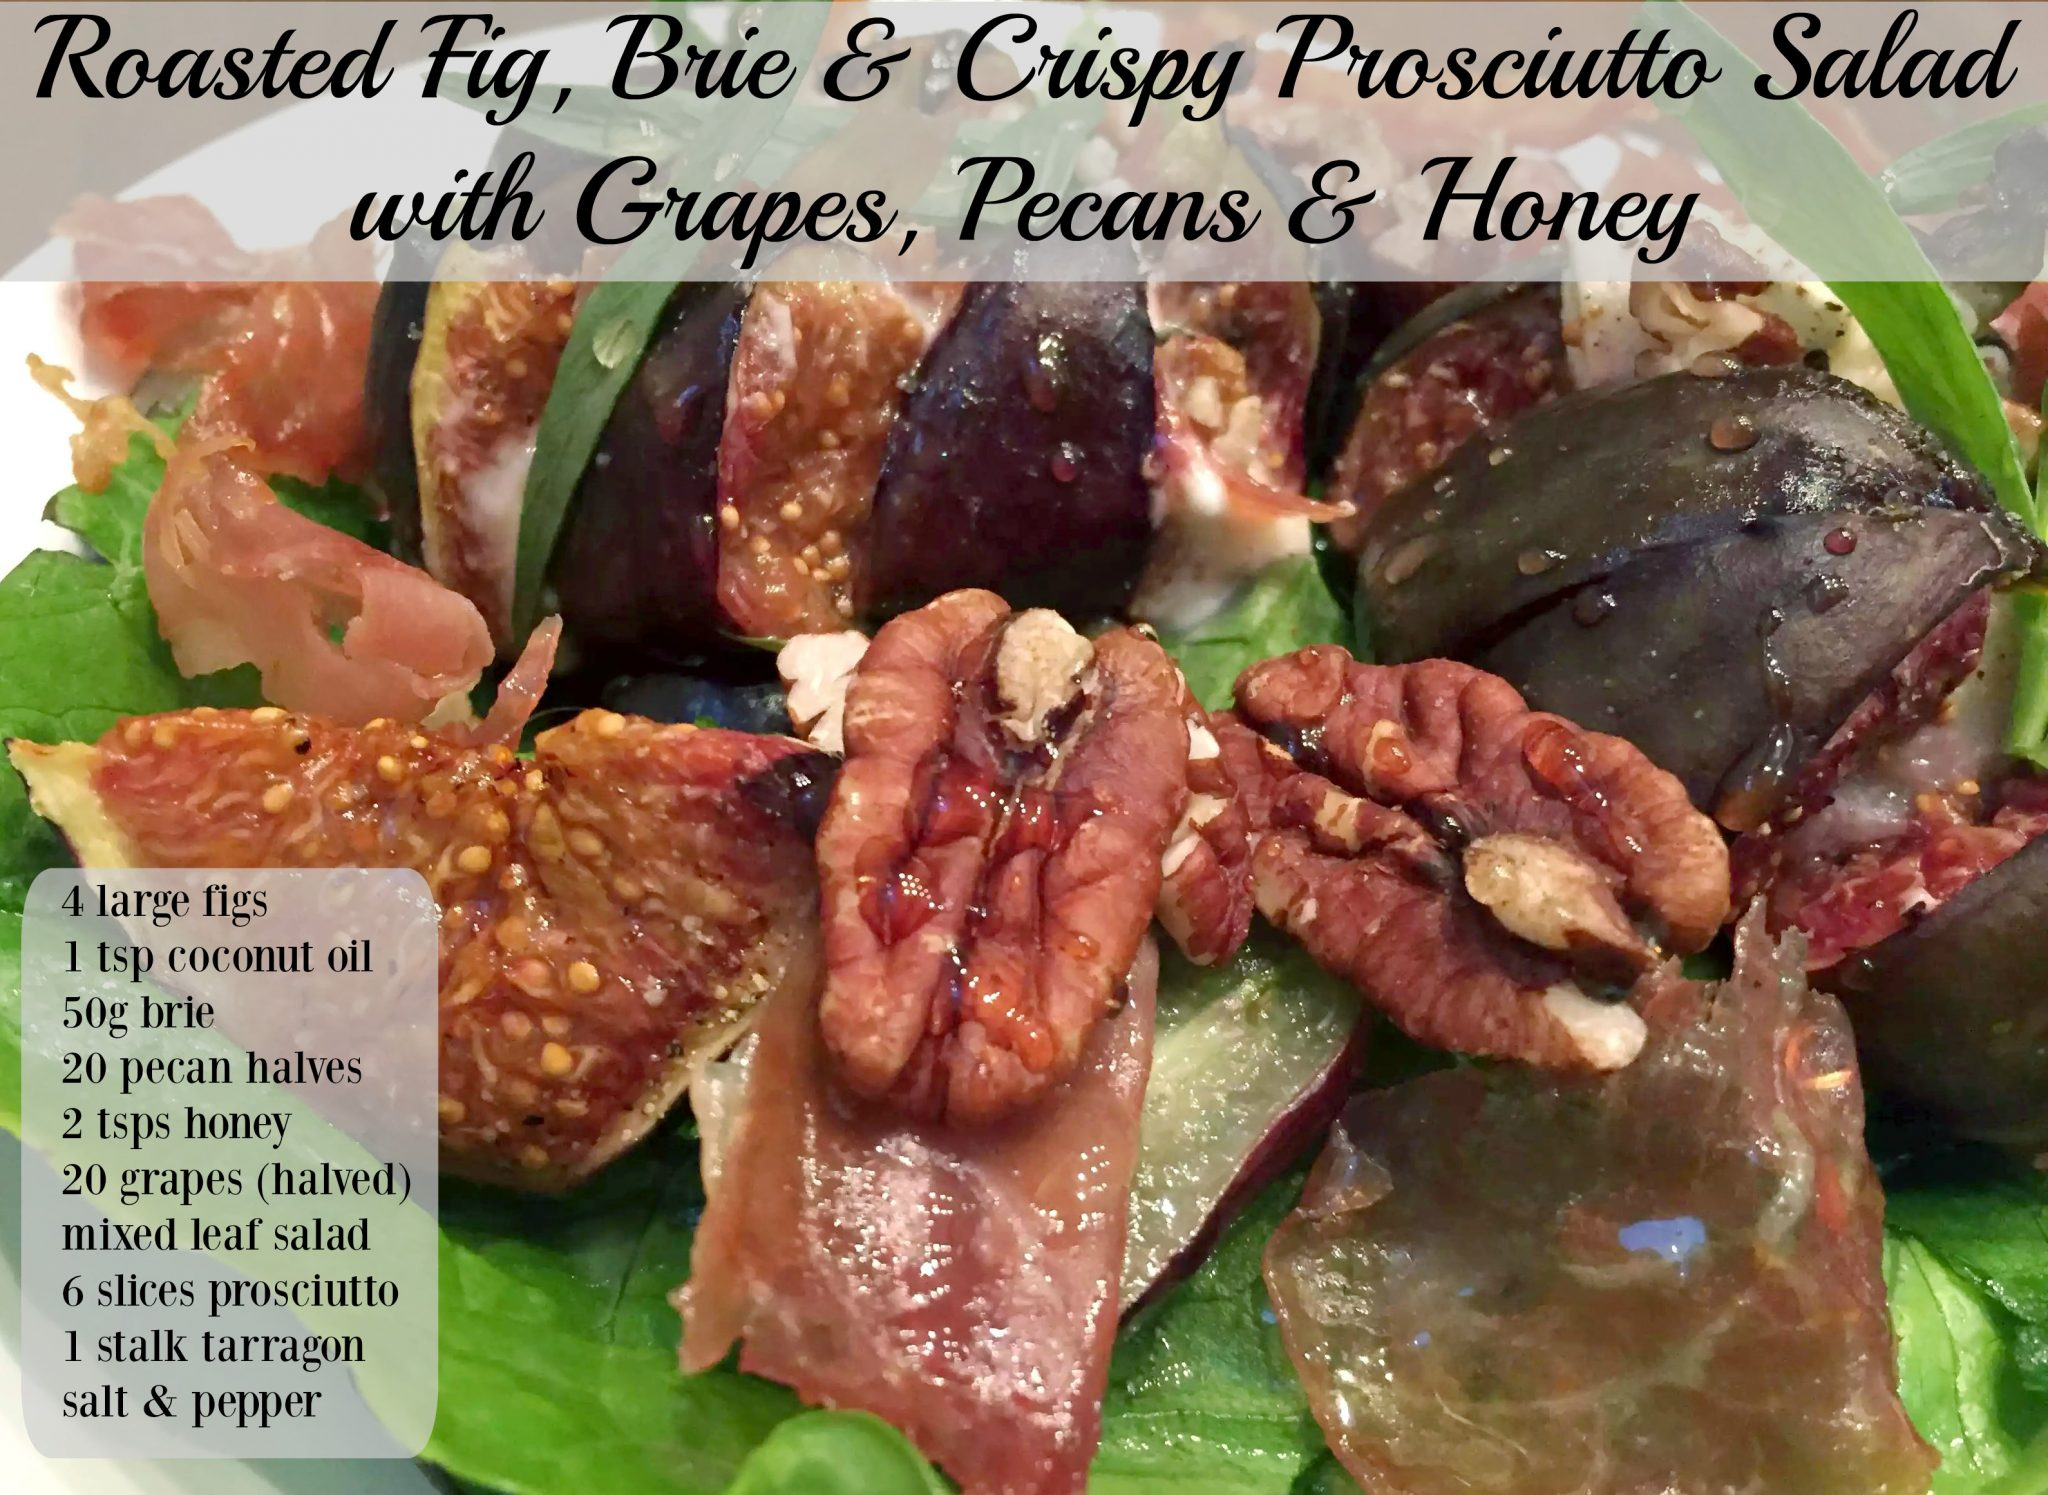 Roasted Fig, Brie & Crispy Prosciutto Salad with Grapes, Pecans, Tarragon & Honey from Emma Eats & Explores - SCD, Paleo, Gluten-Free, Grain-Free, Refined Sugar-Free, Clean Eating